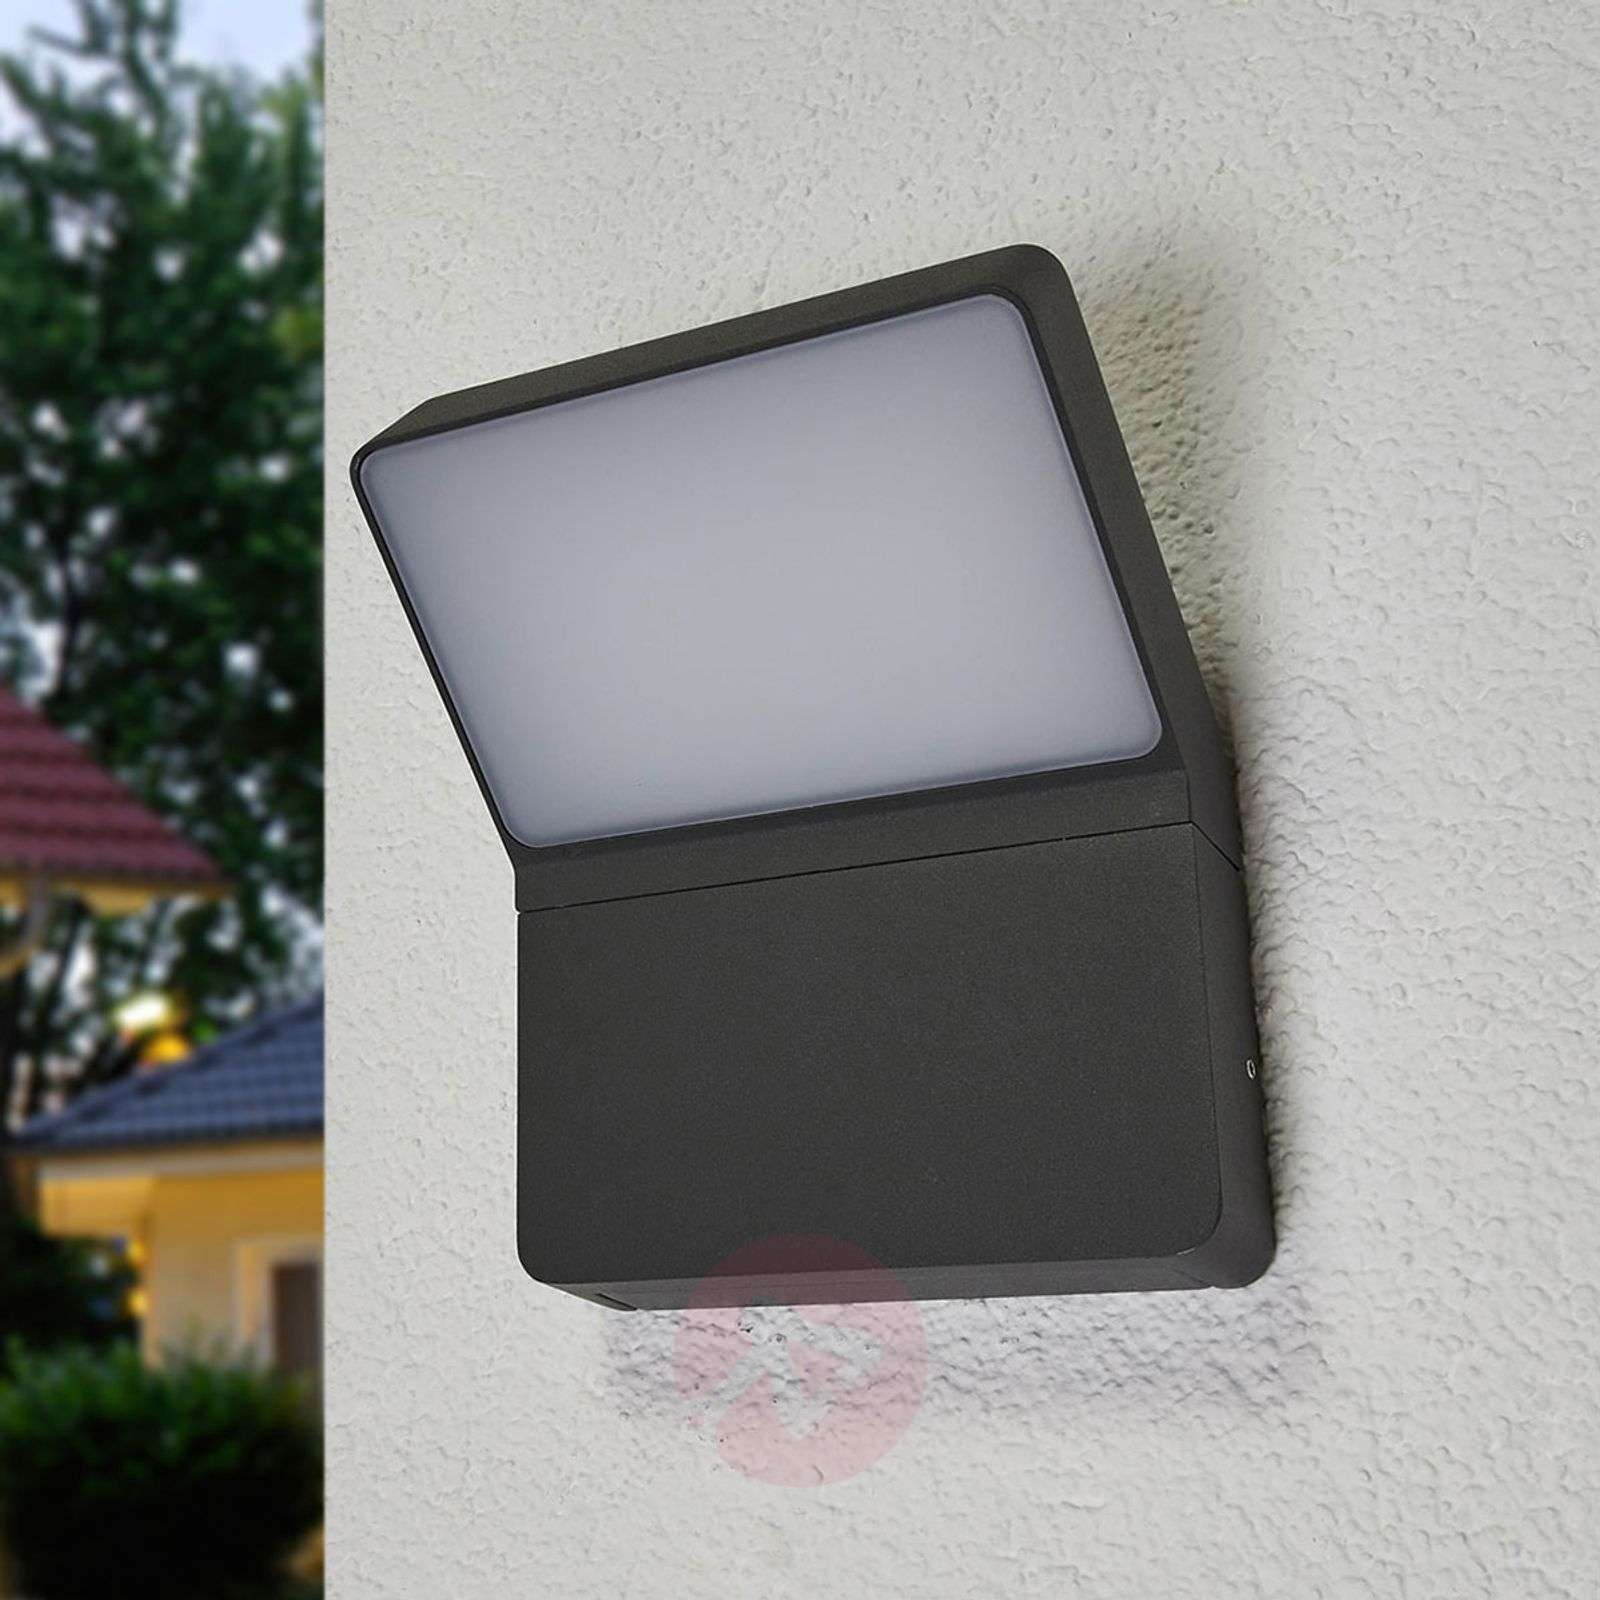 Downlighting LED outdoor wall lamp Evelin-9618105-01